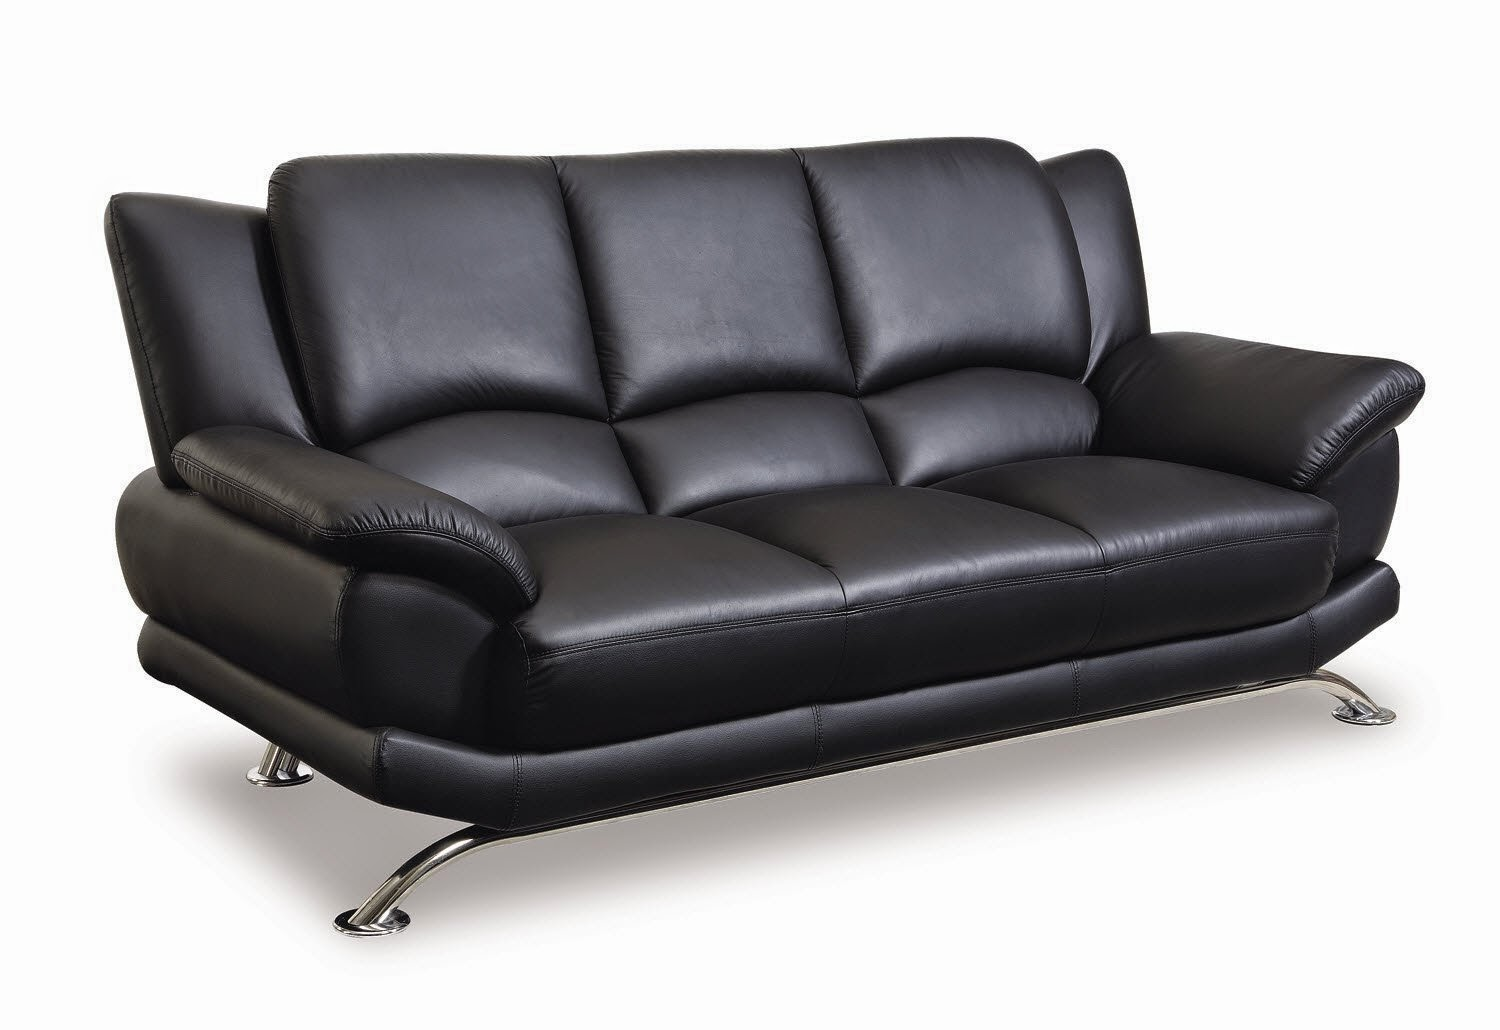 black leather sofa - global leather matching sofas